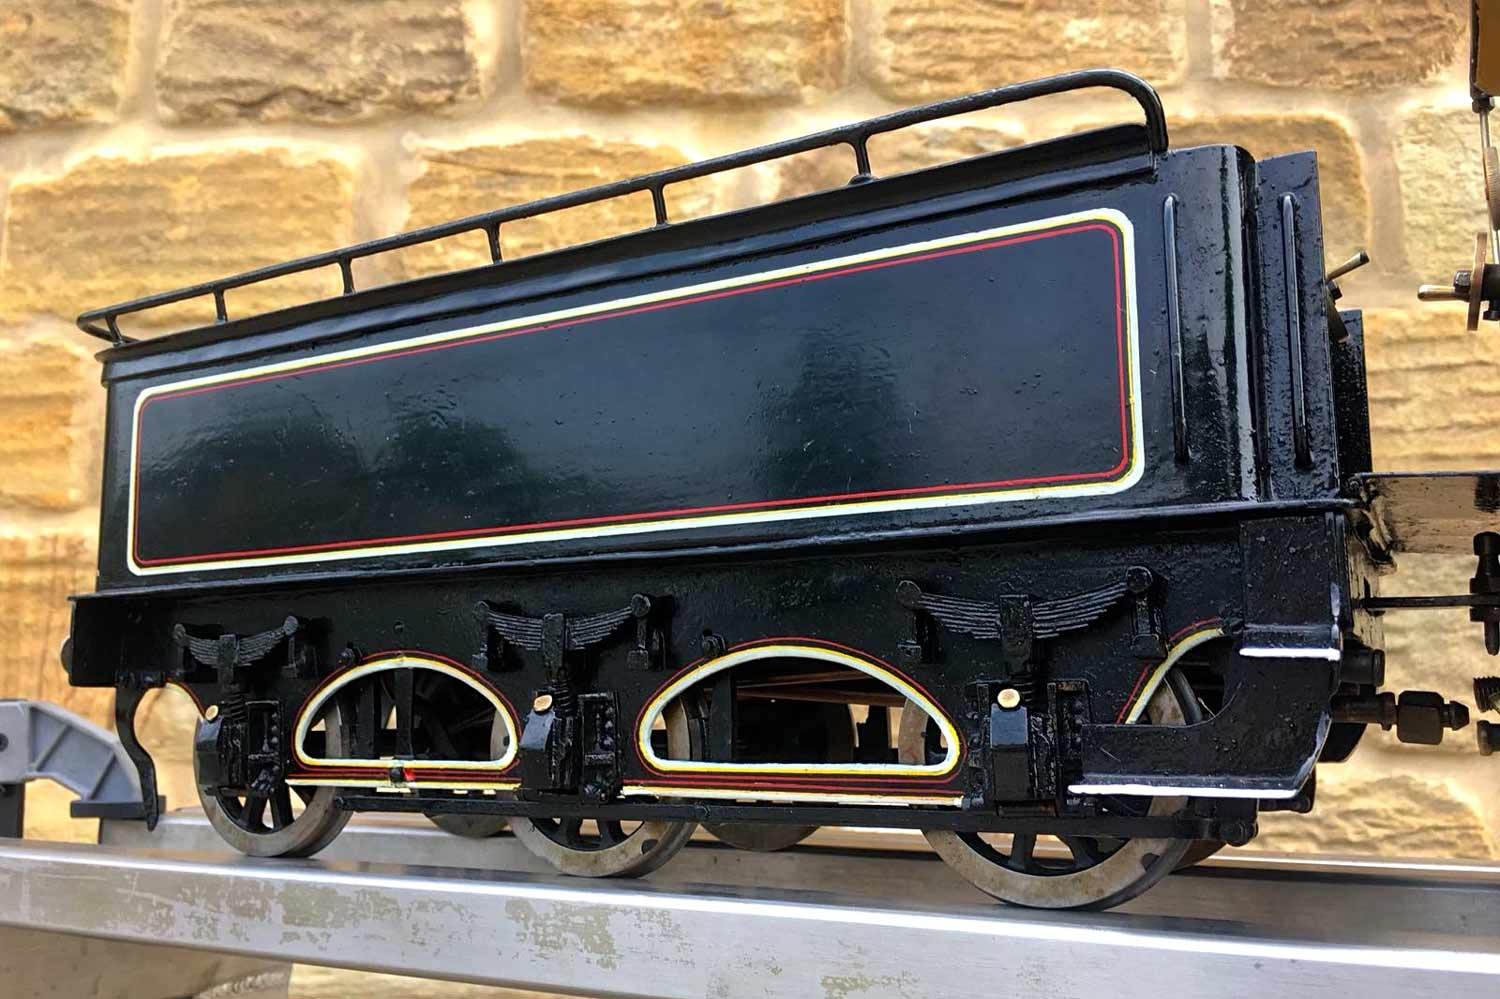 test 3-and-a-half-inch-LNWR-King-George-the-Fifth-live-steam-locomotive-for-sale-05